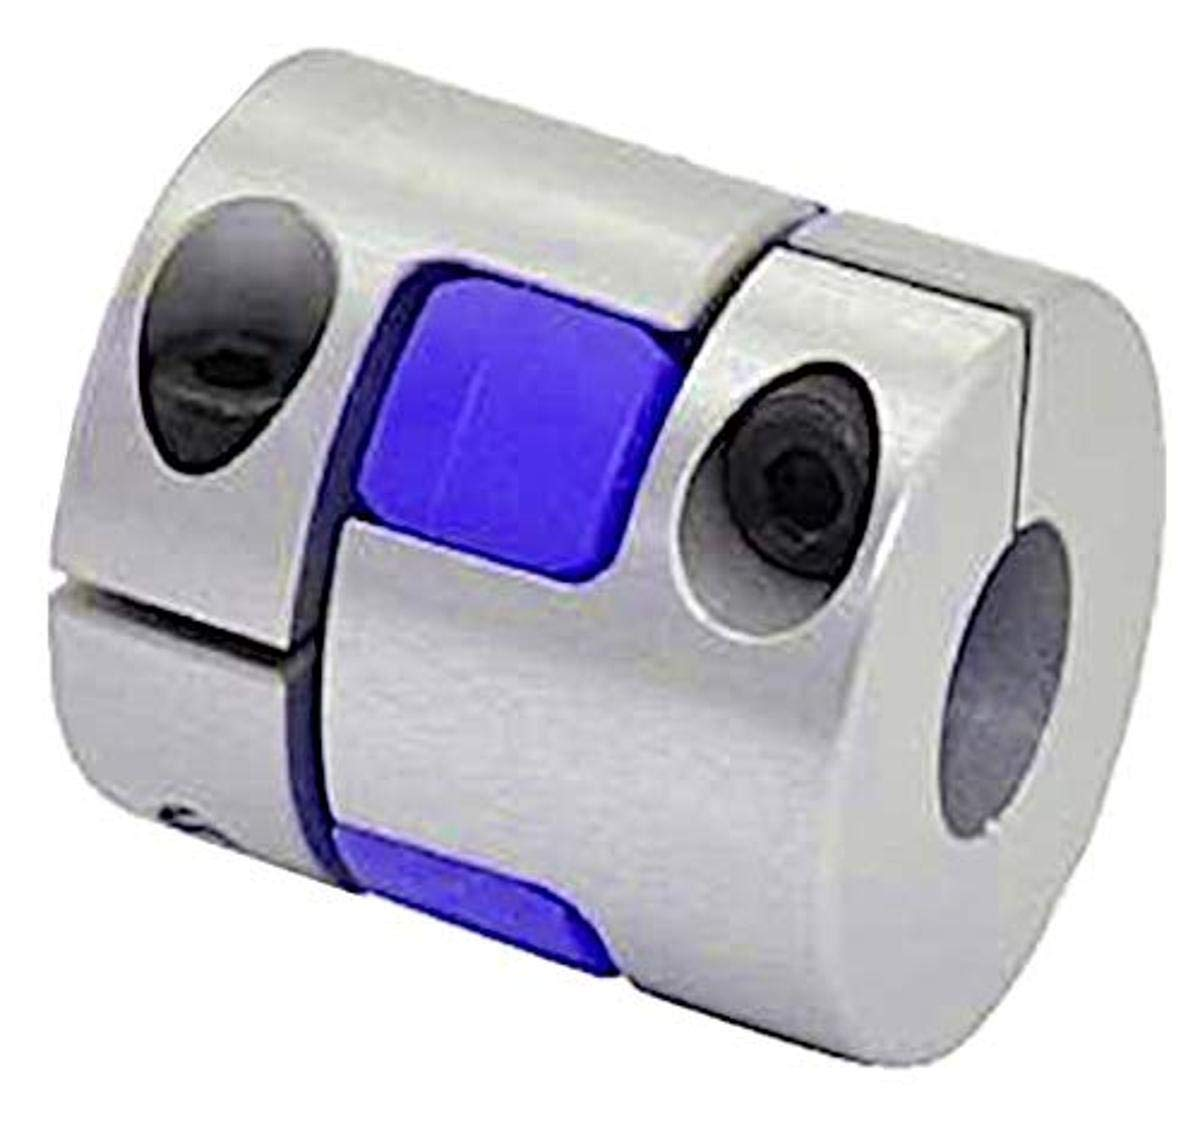 NBK MJC-65CS-EBL-14-13 16 Detroit NEW before selling ☆ Mall Jaw Clamping Coupling Type Flexible